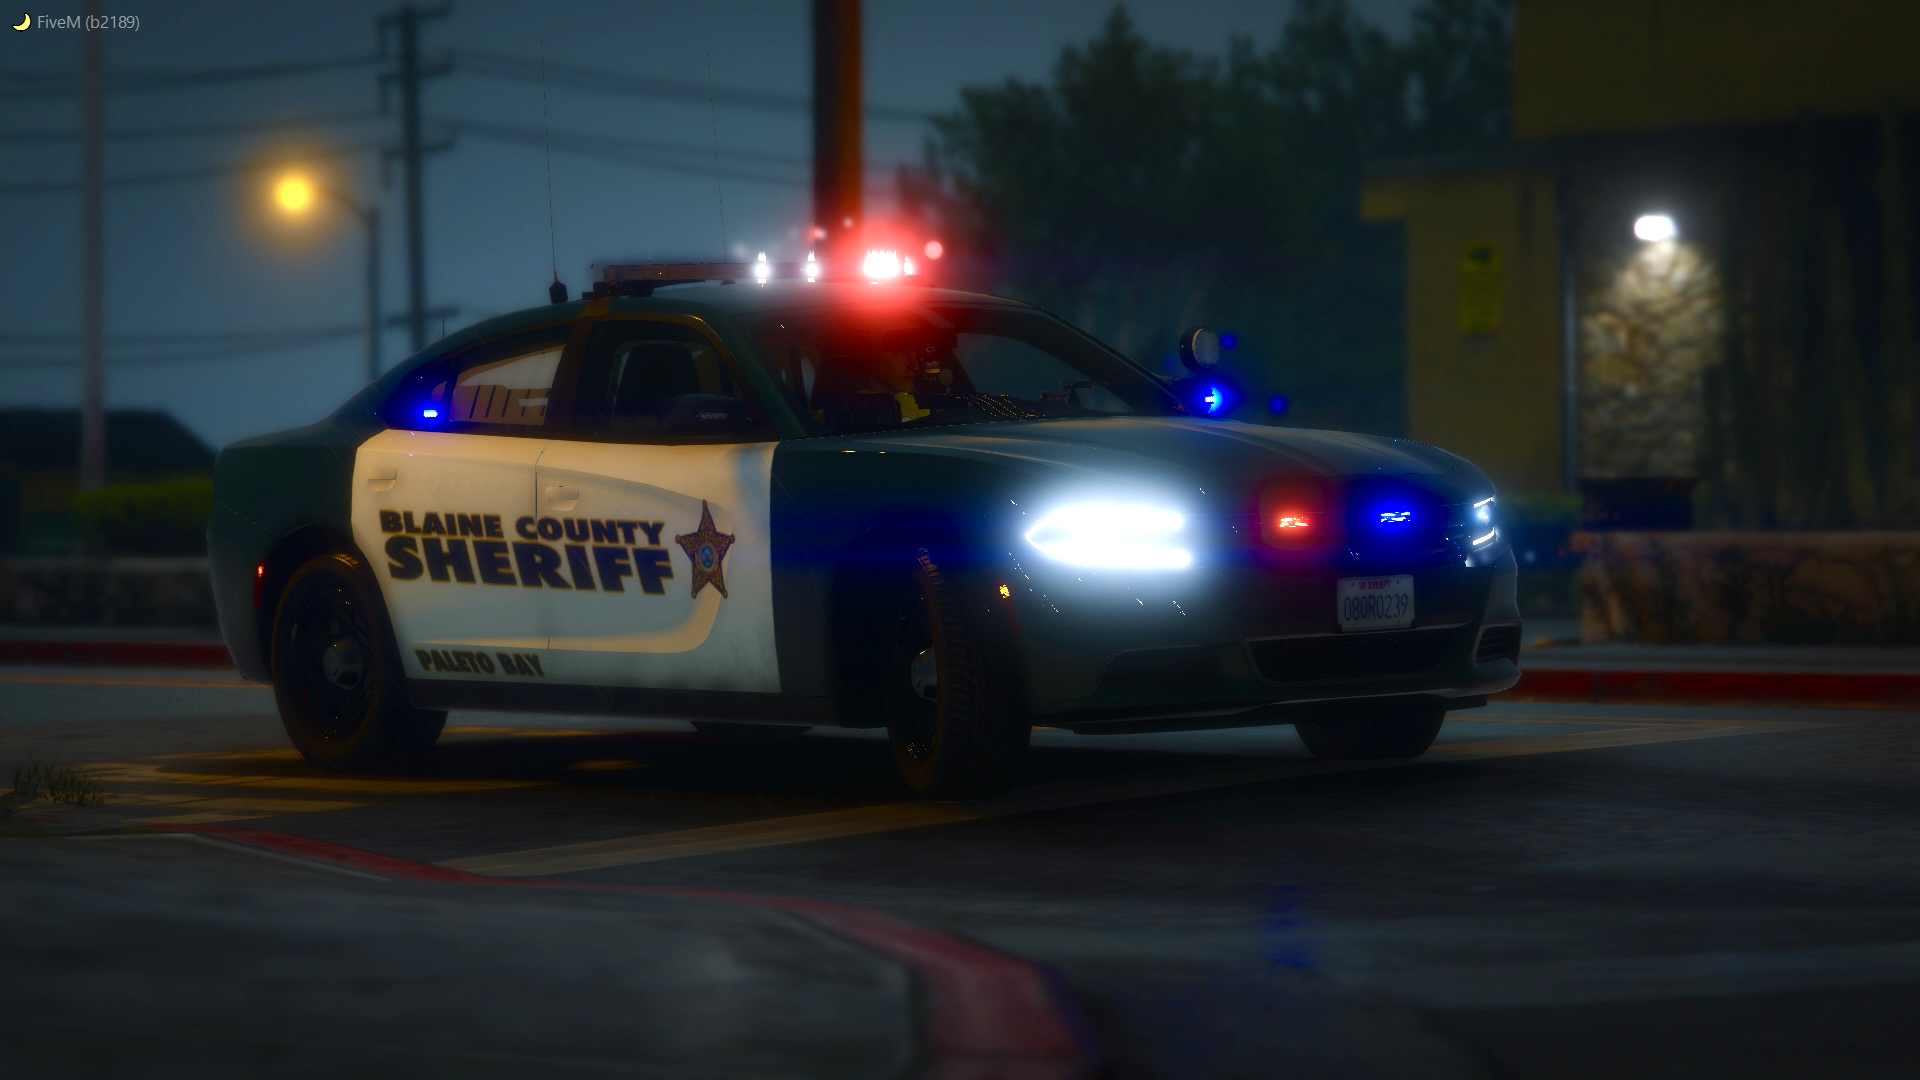 BCSO Night Charger